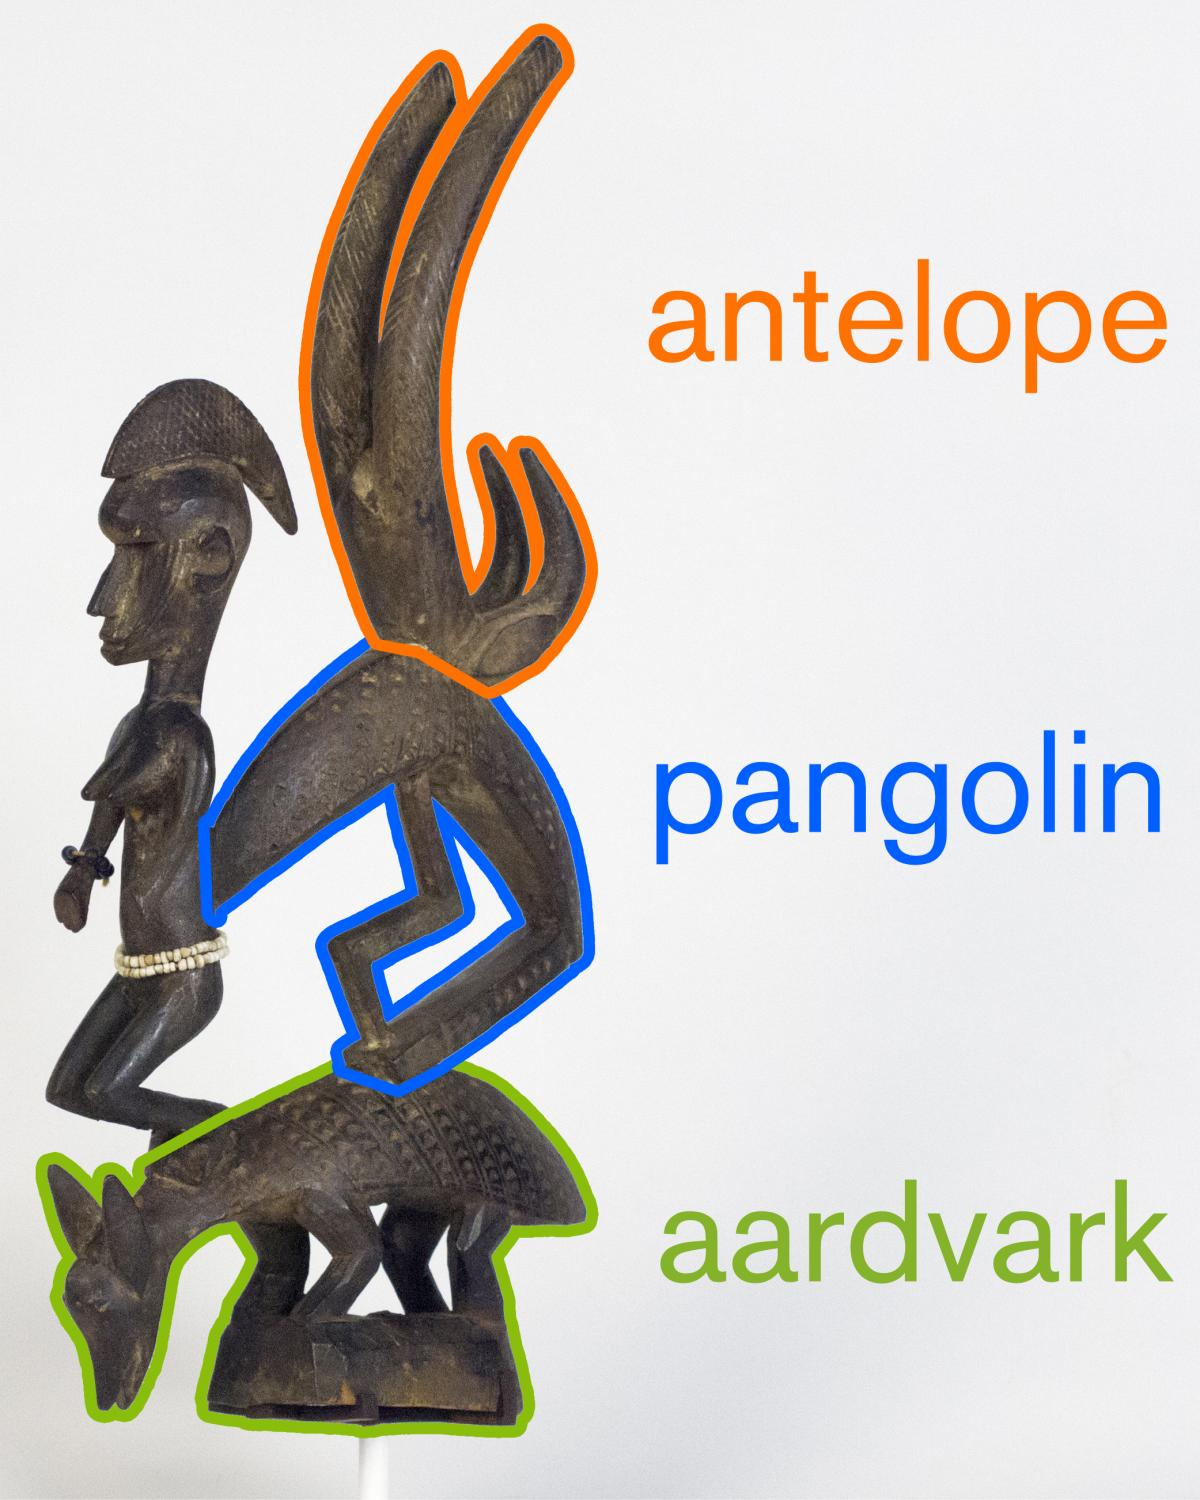 A diagram illustrating the horns of the antelope, body of a pangolin, and body of an aardvark.